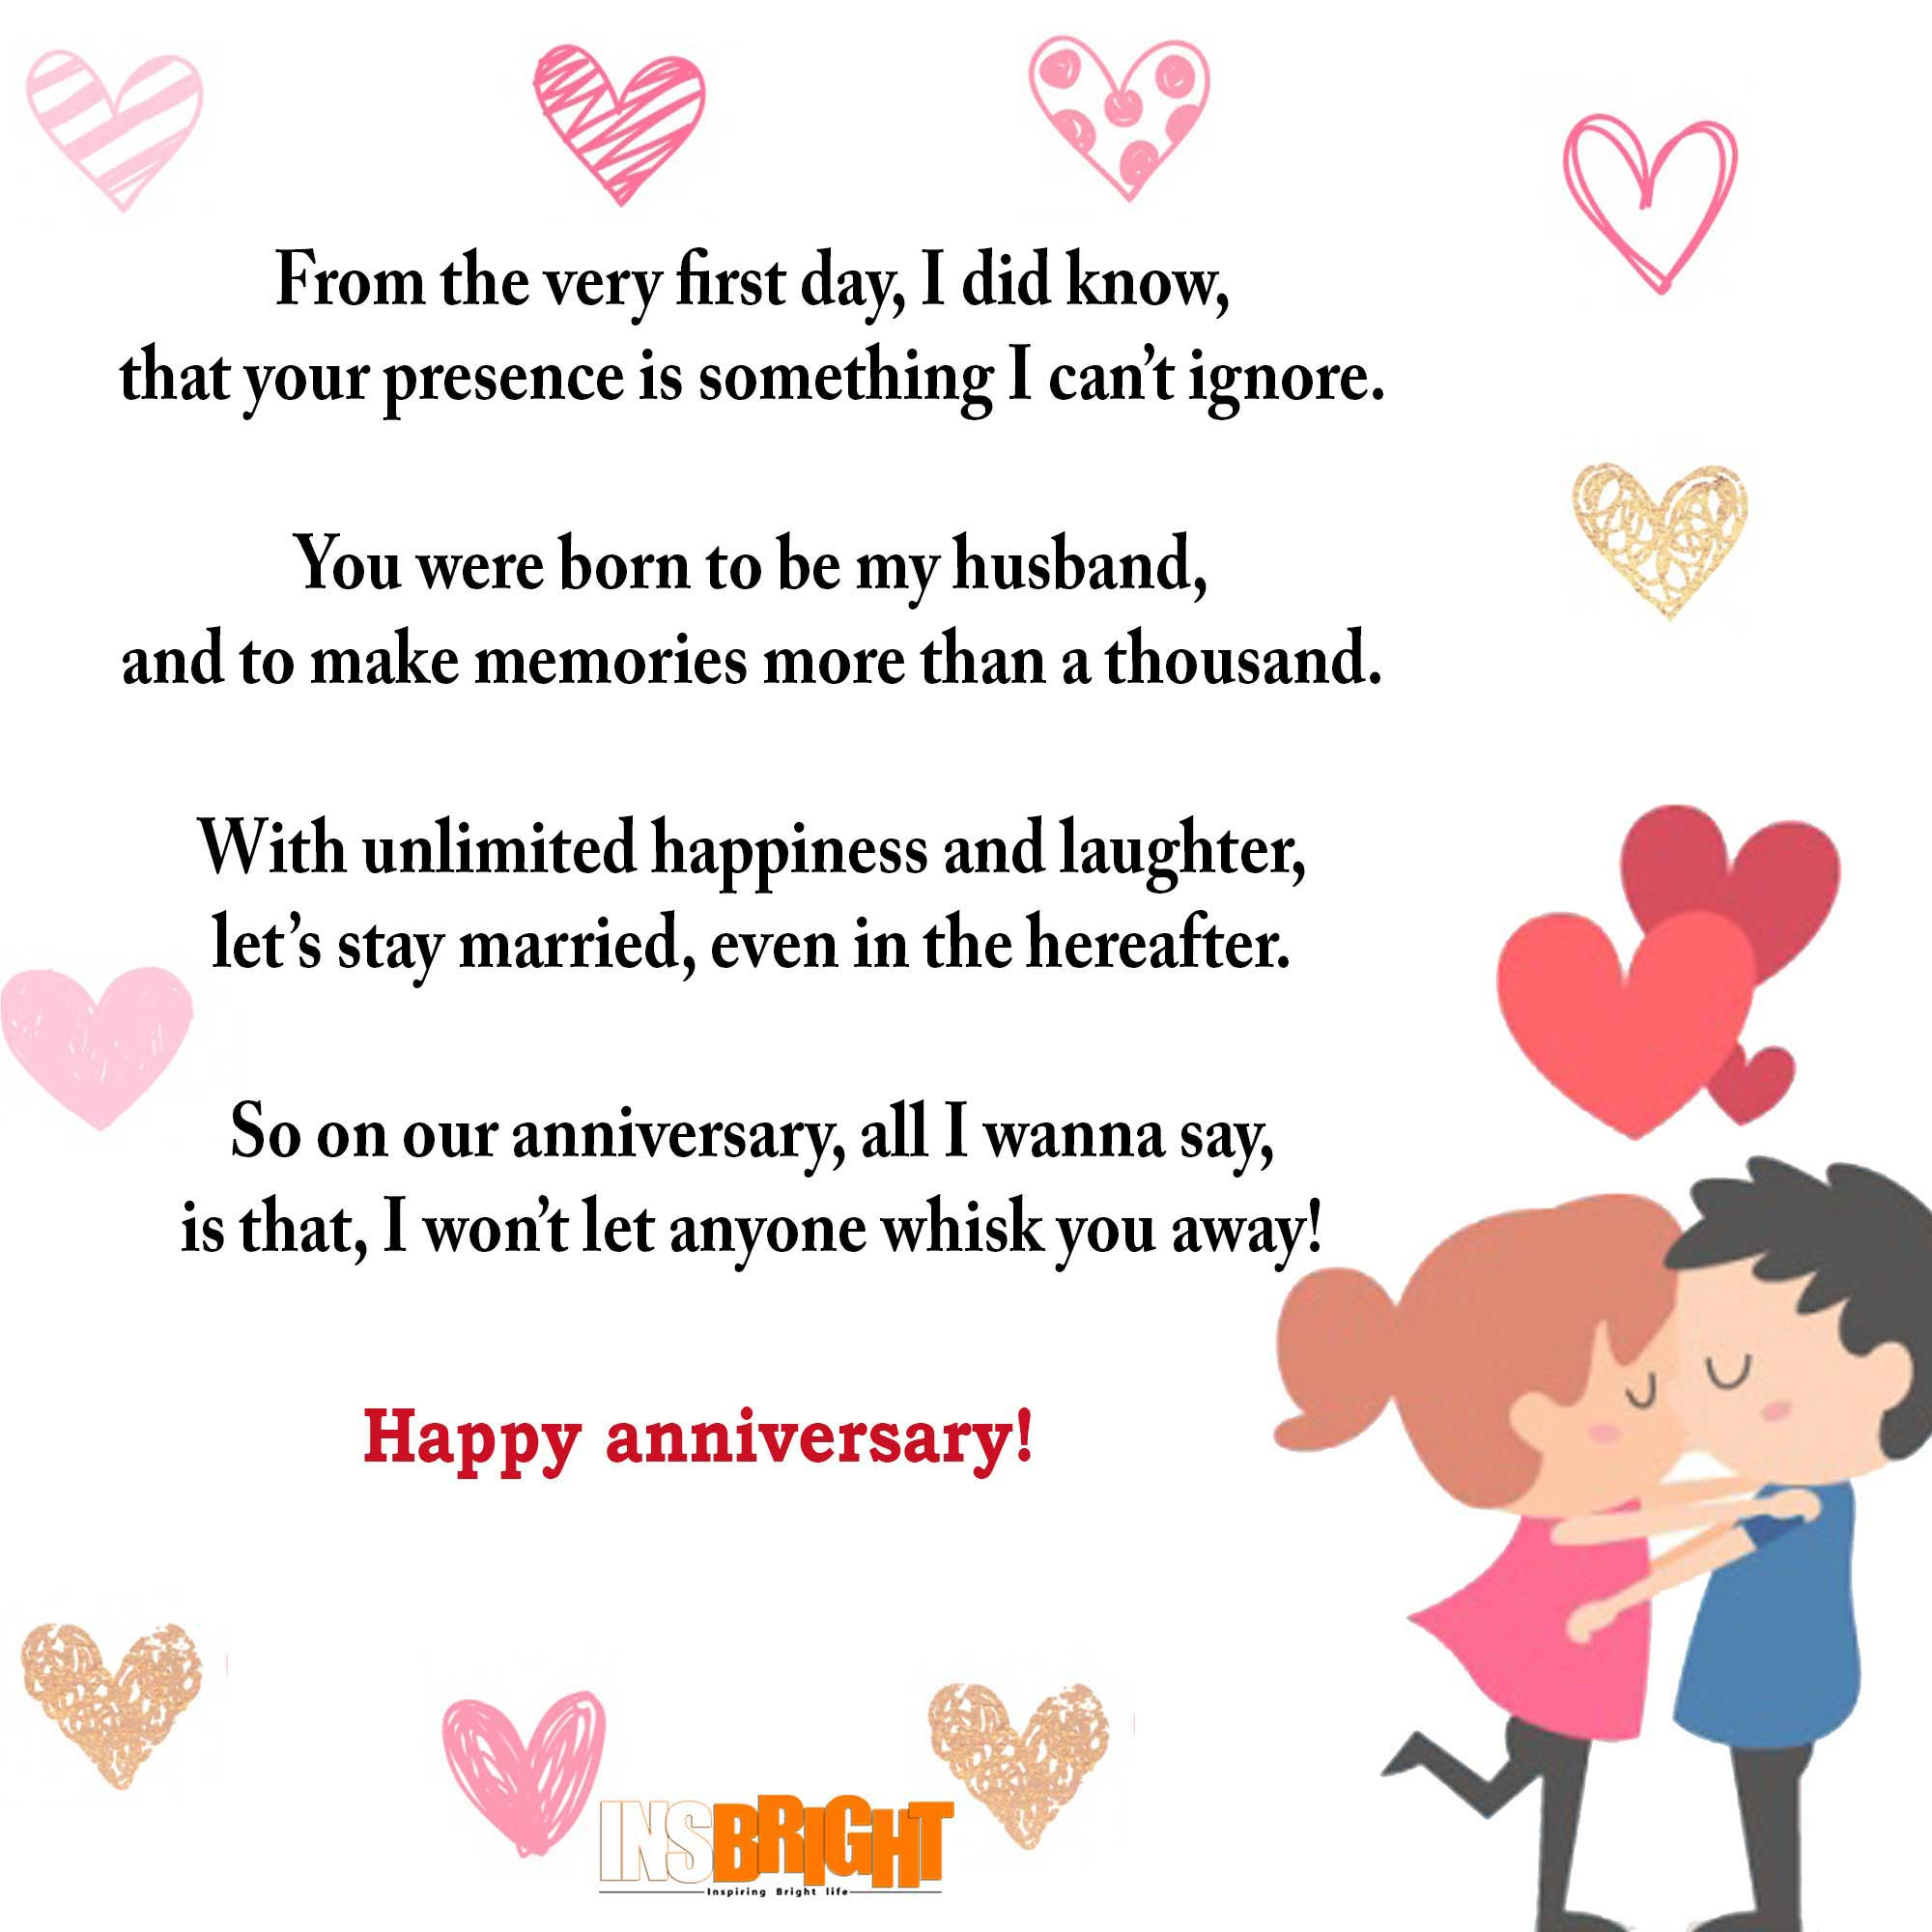 happy anniversary images for him